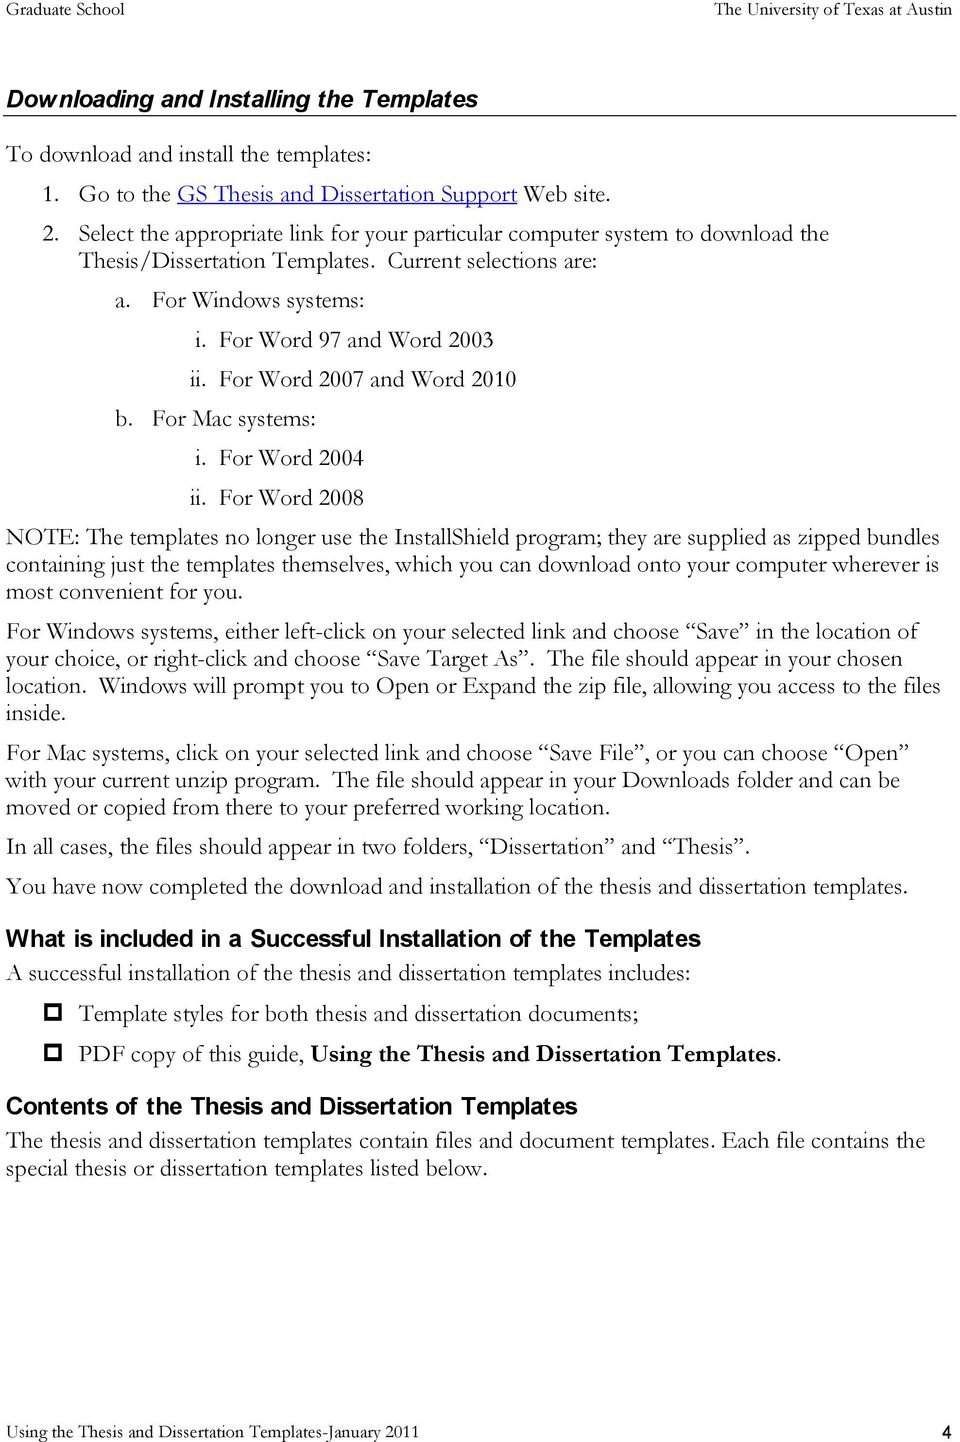 Using The Thesis And Dissertation Templates Pdf